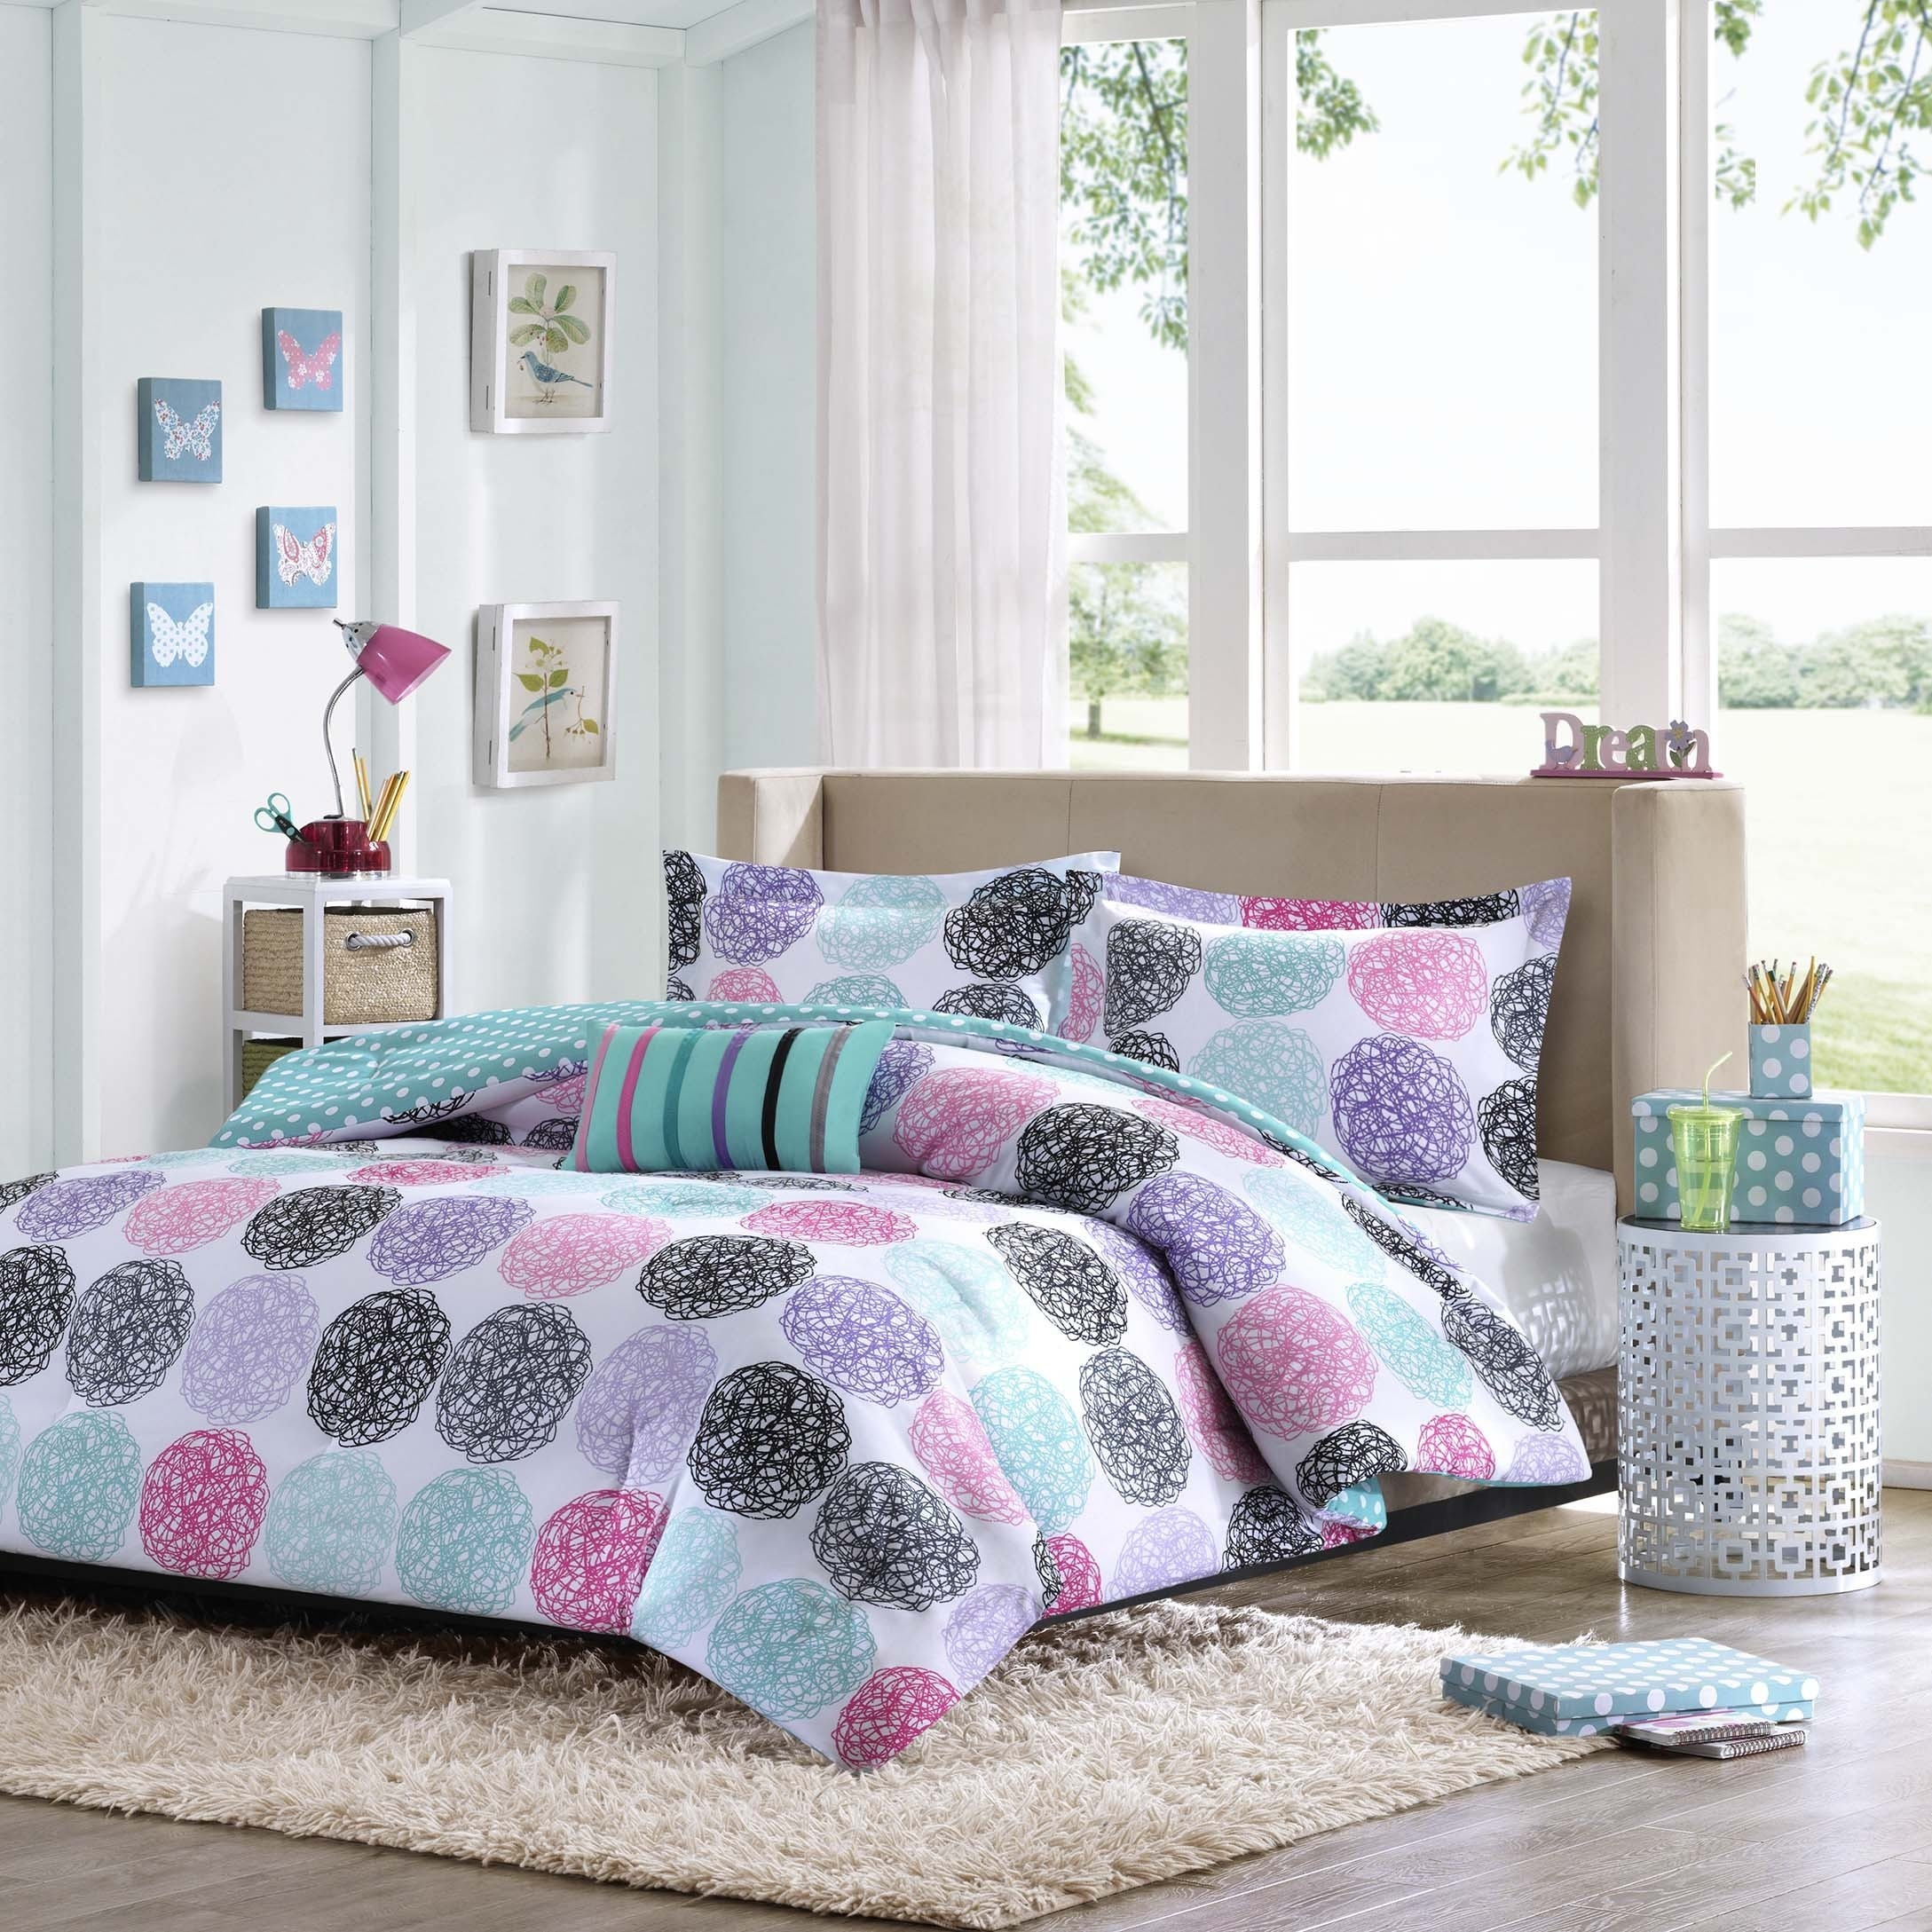 Blue polka dot bedding - Blue Polka Dot Bedding 15